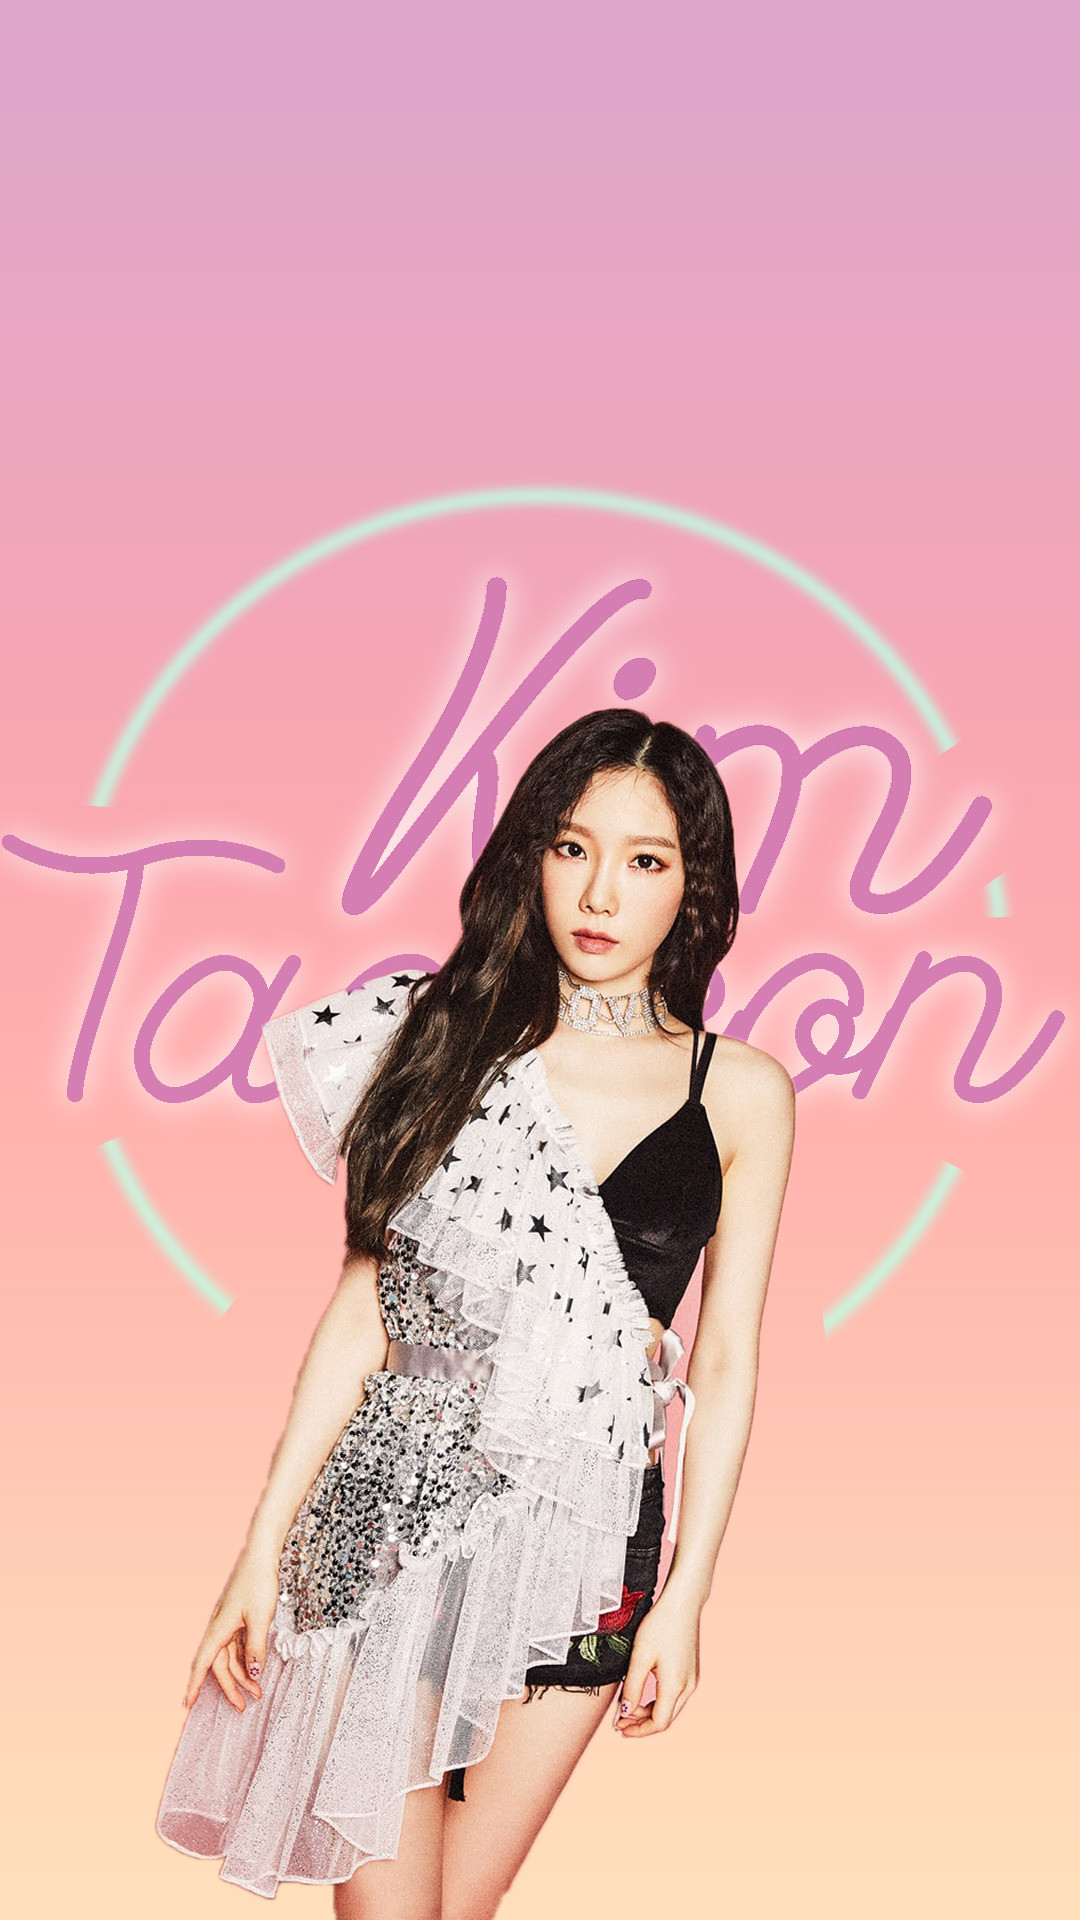 Res: 1080x1920, kim taeyeon taeyeon taeyeon wallpaper taeyeon lockscreens girls generation  Girls Generation Wallpaper girls generation edit girls